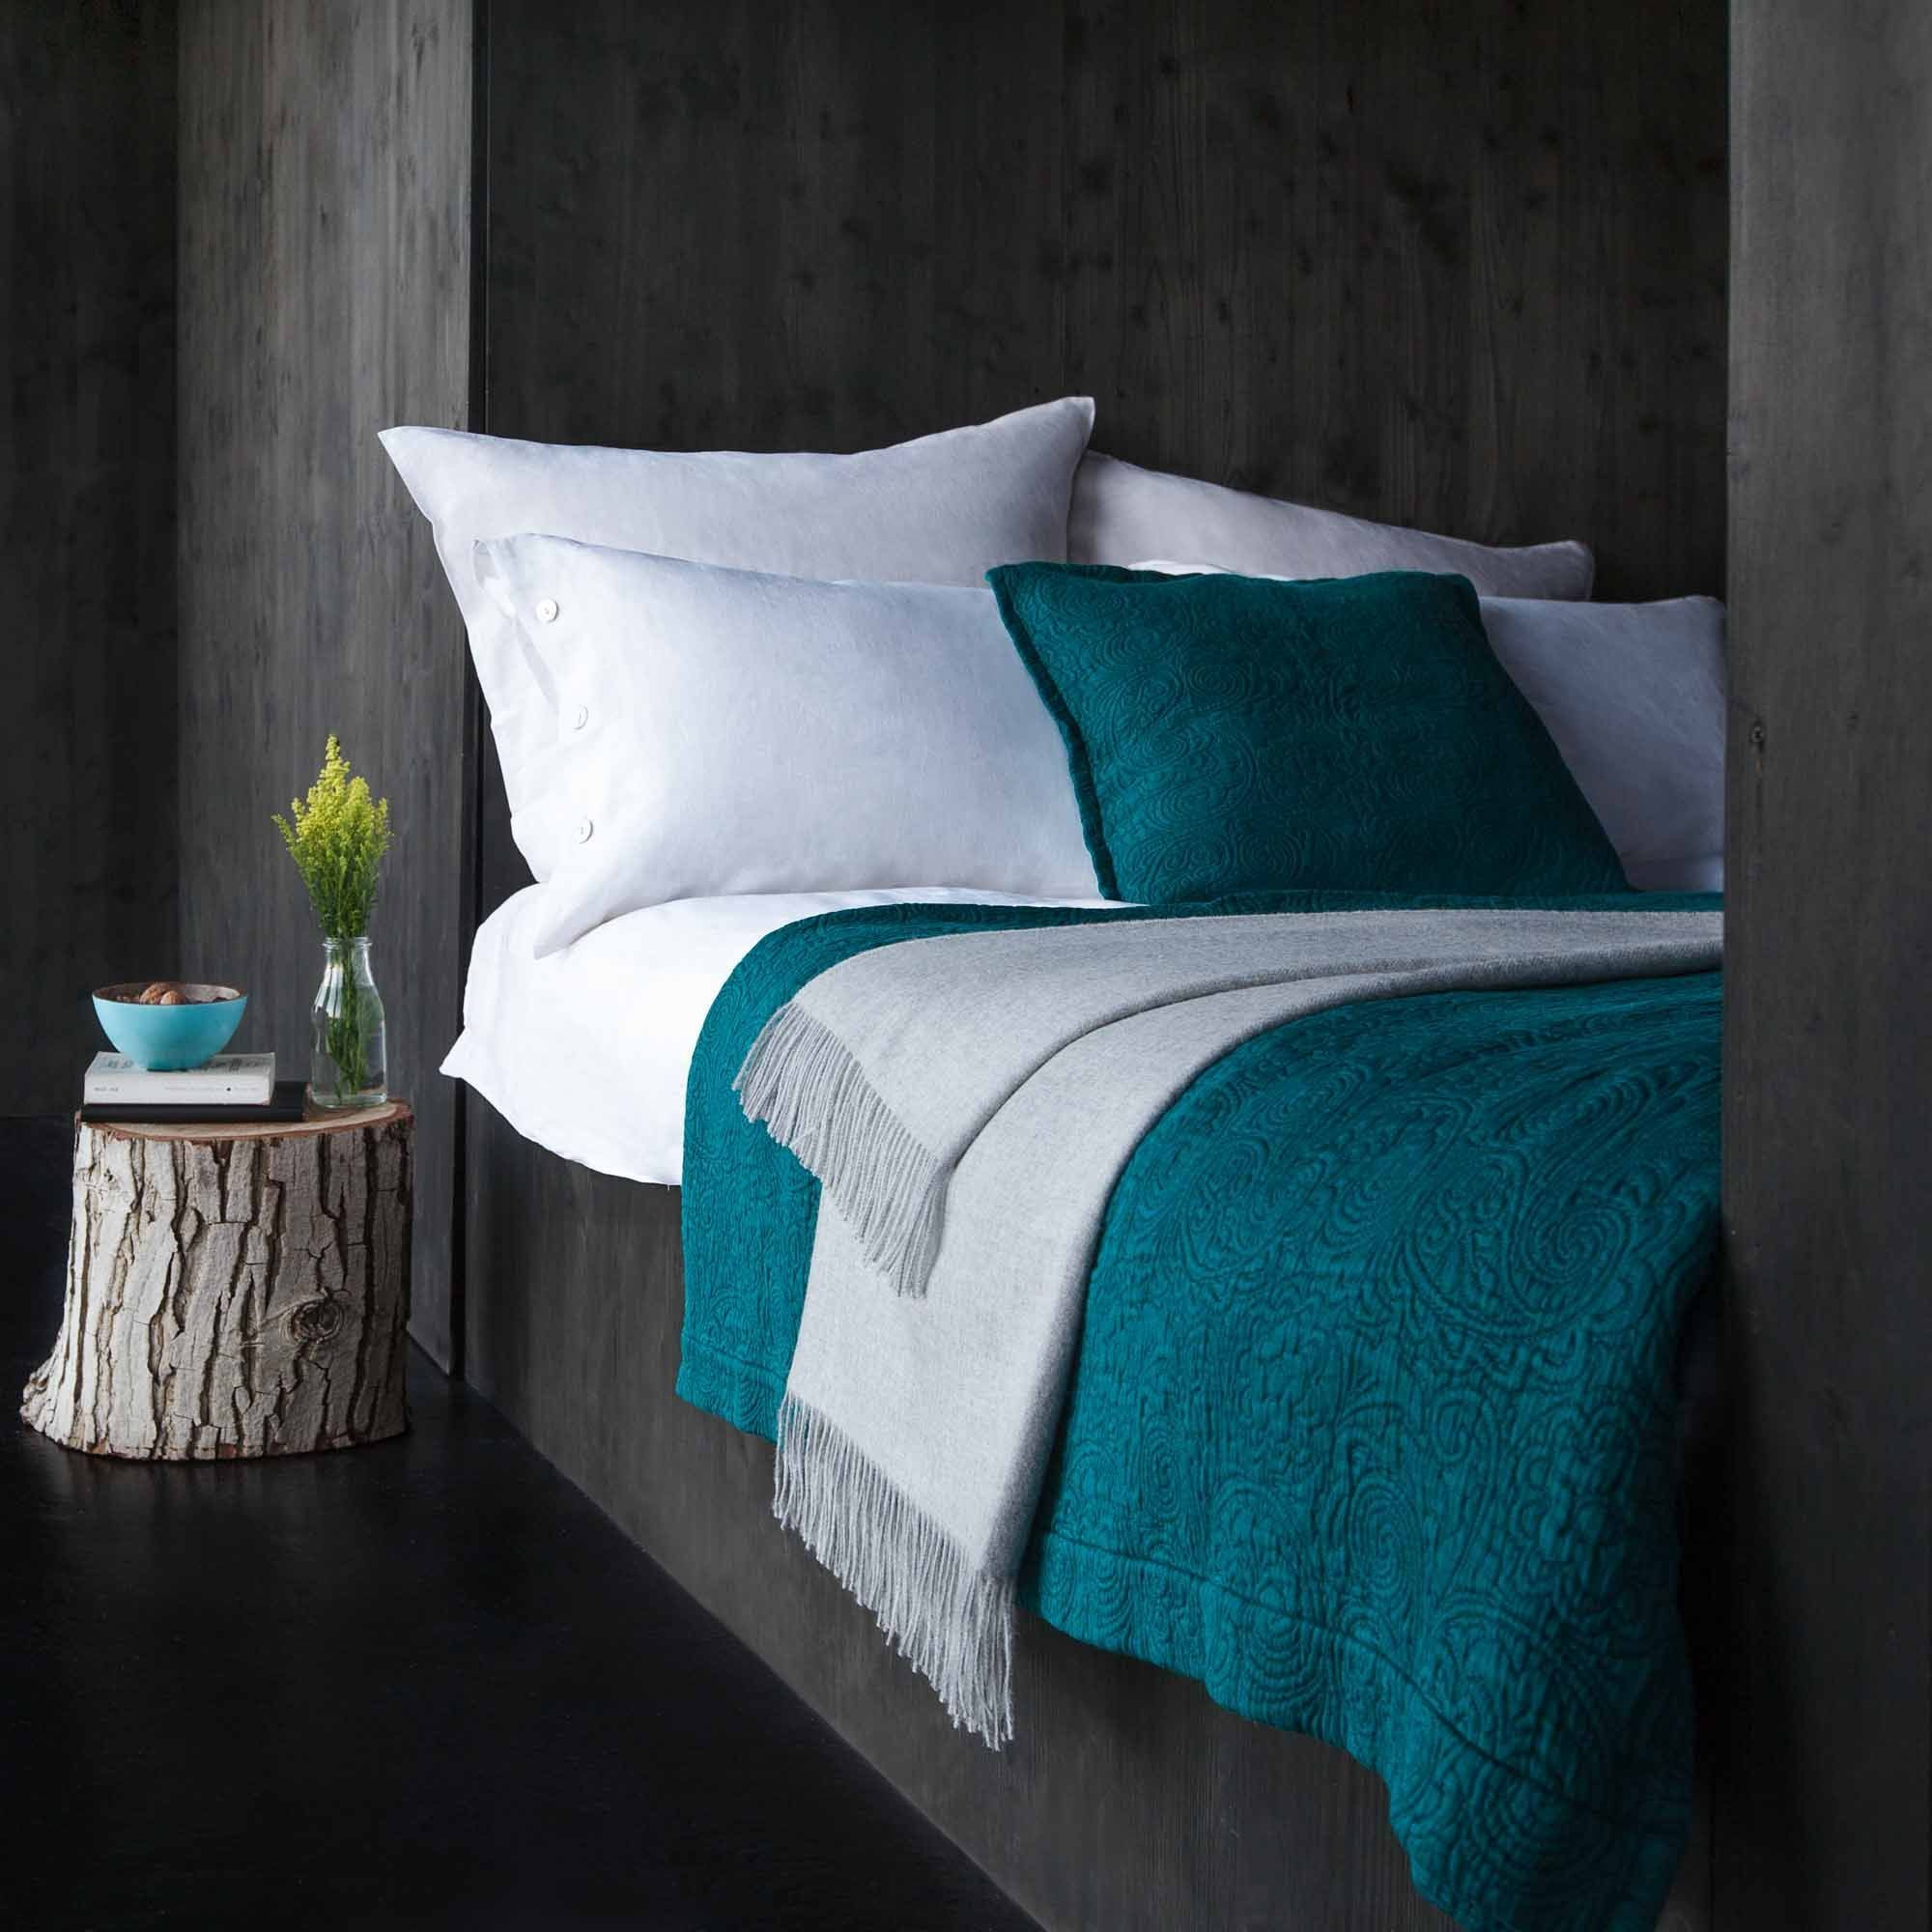 Best 25 Teal And Grey Ideas On Pinterest Grey Teal With Pictures